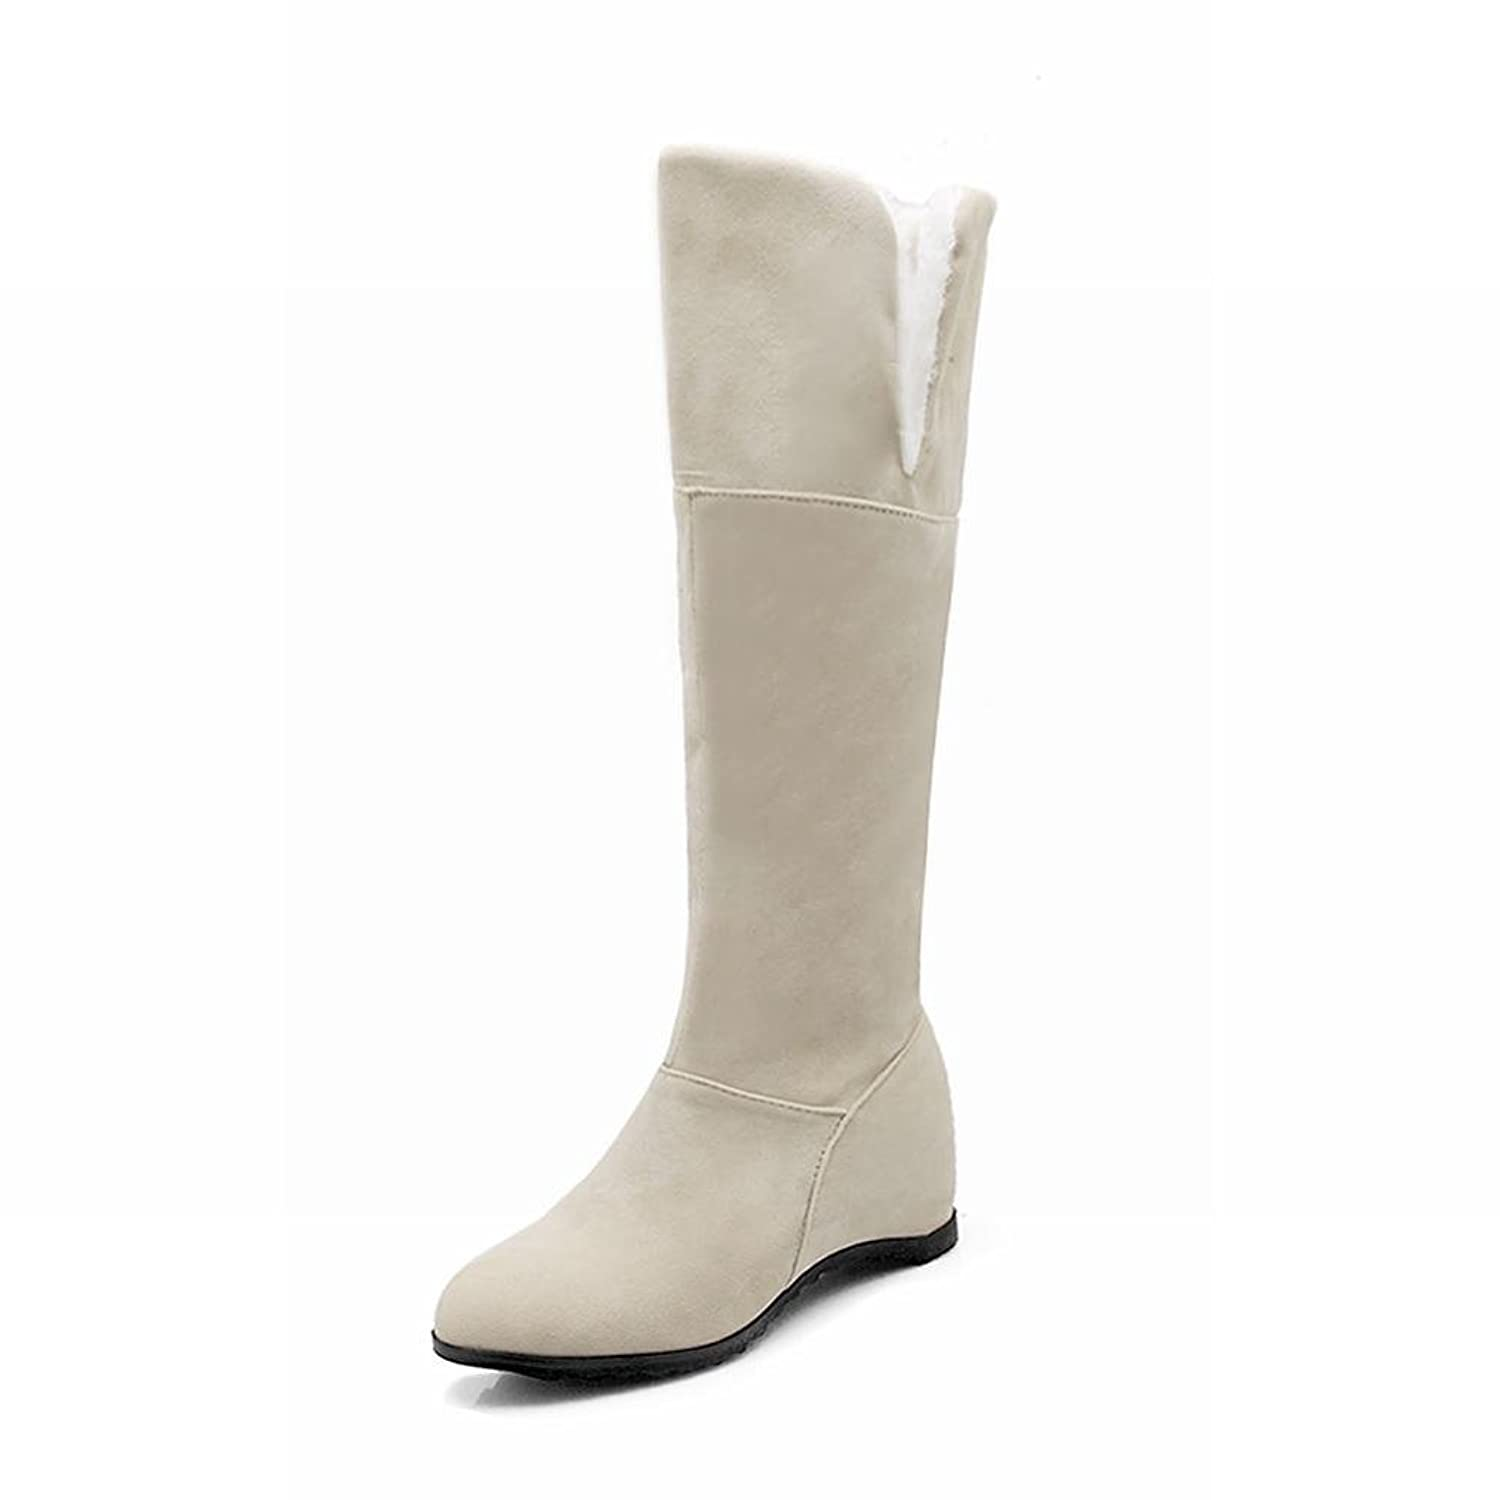 Charm Foot Women's Sweet Suede Cold Weather Winter Snow Pull-on Knee High Wedge Boots